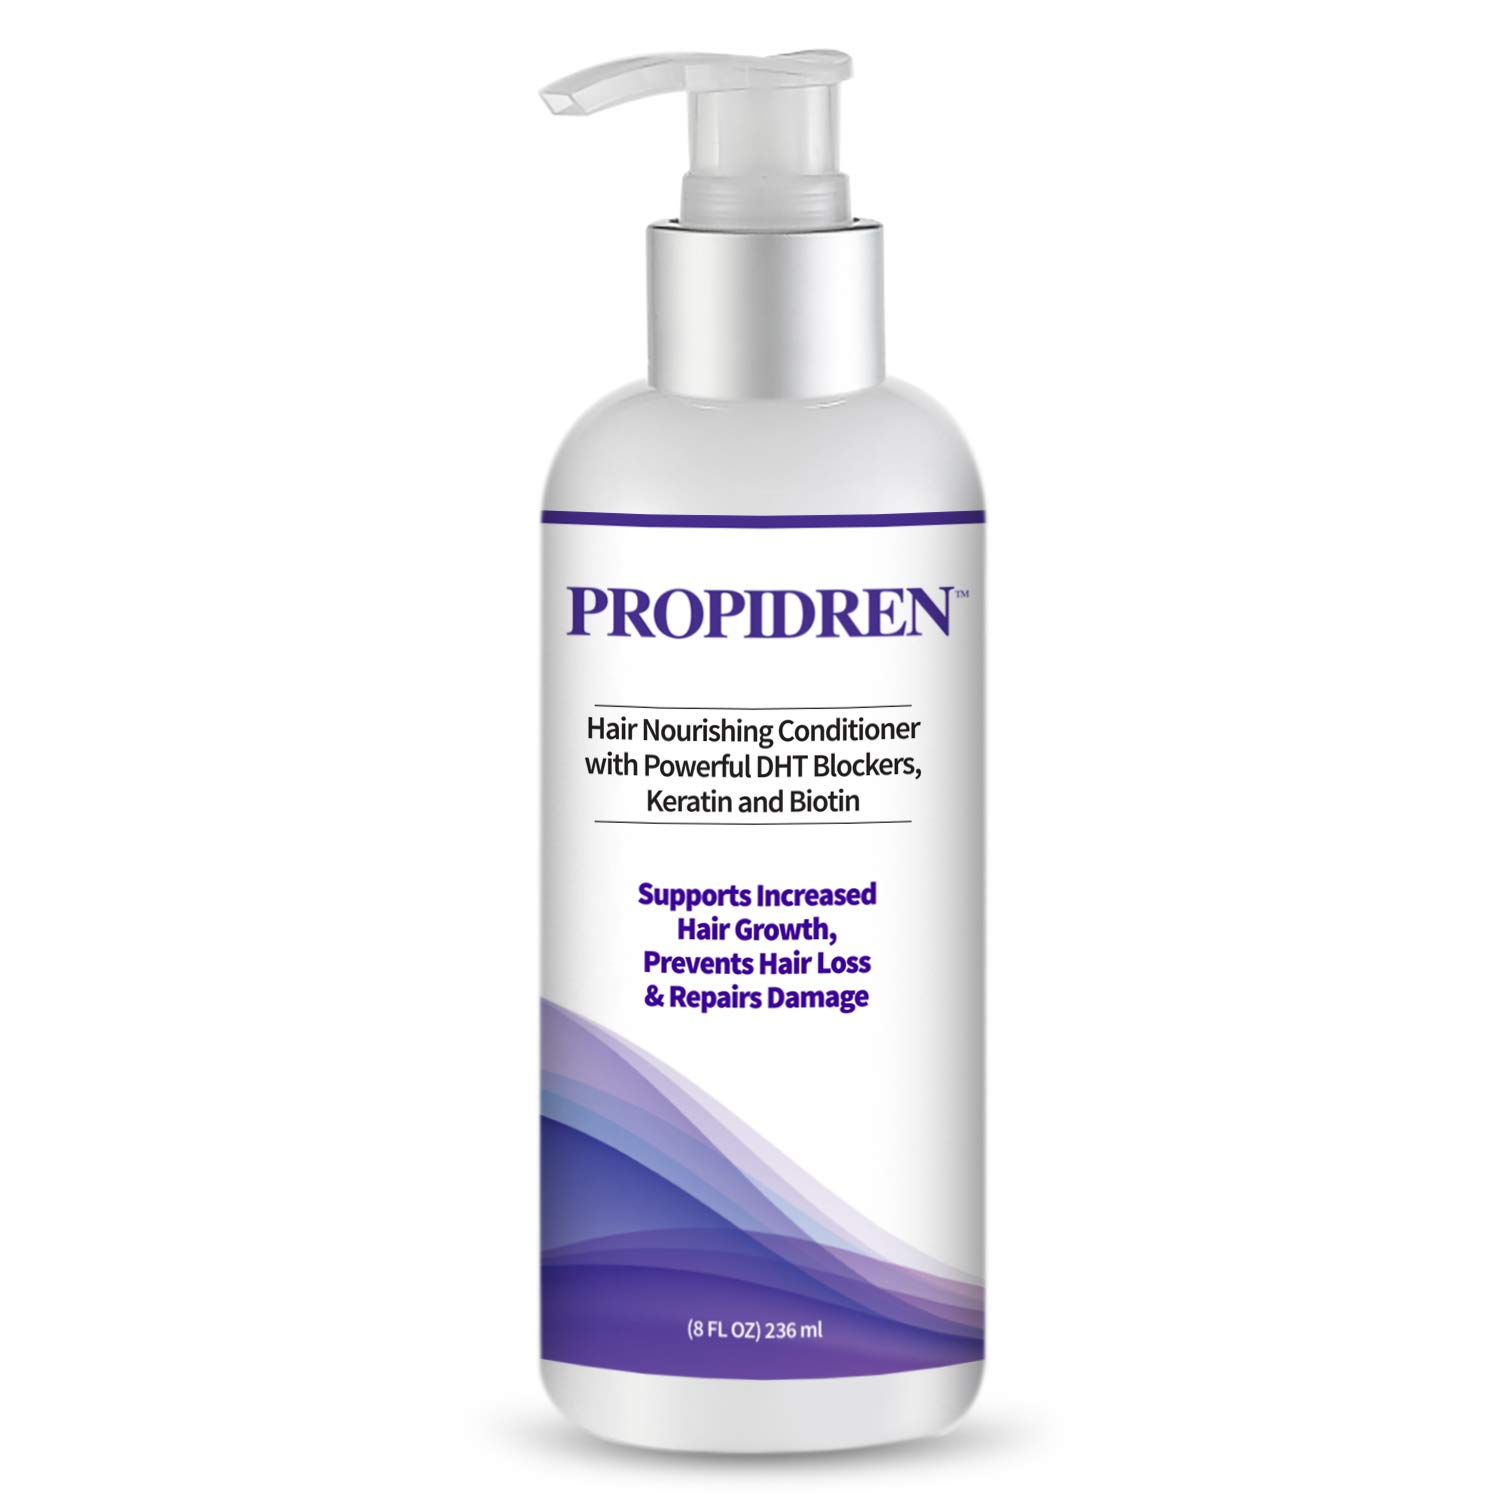 Hairgenics Propidren Hair Growth Conditioner with Keratin, Collagen and Proteins to Moisturize Hair, Biotin for Hair Growth, and Potent DHT Blockers to Prevent Hair Loss and Help Regrow Hair. by Pronexa